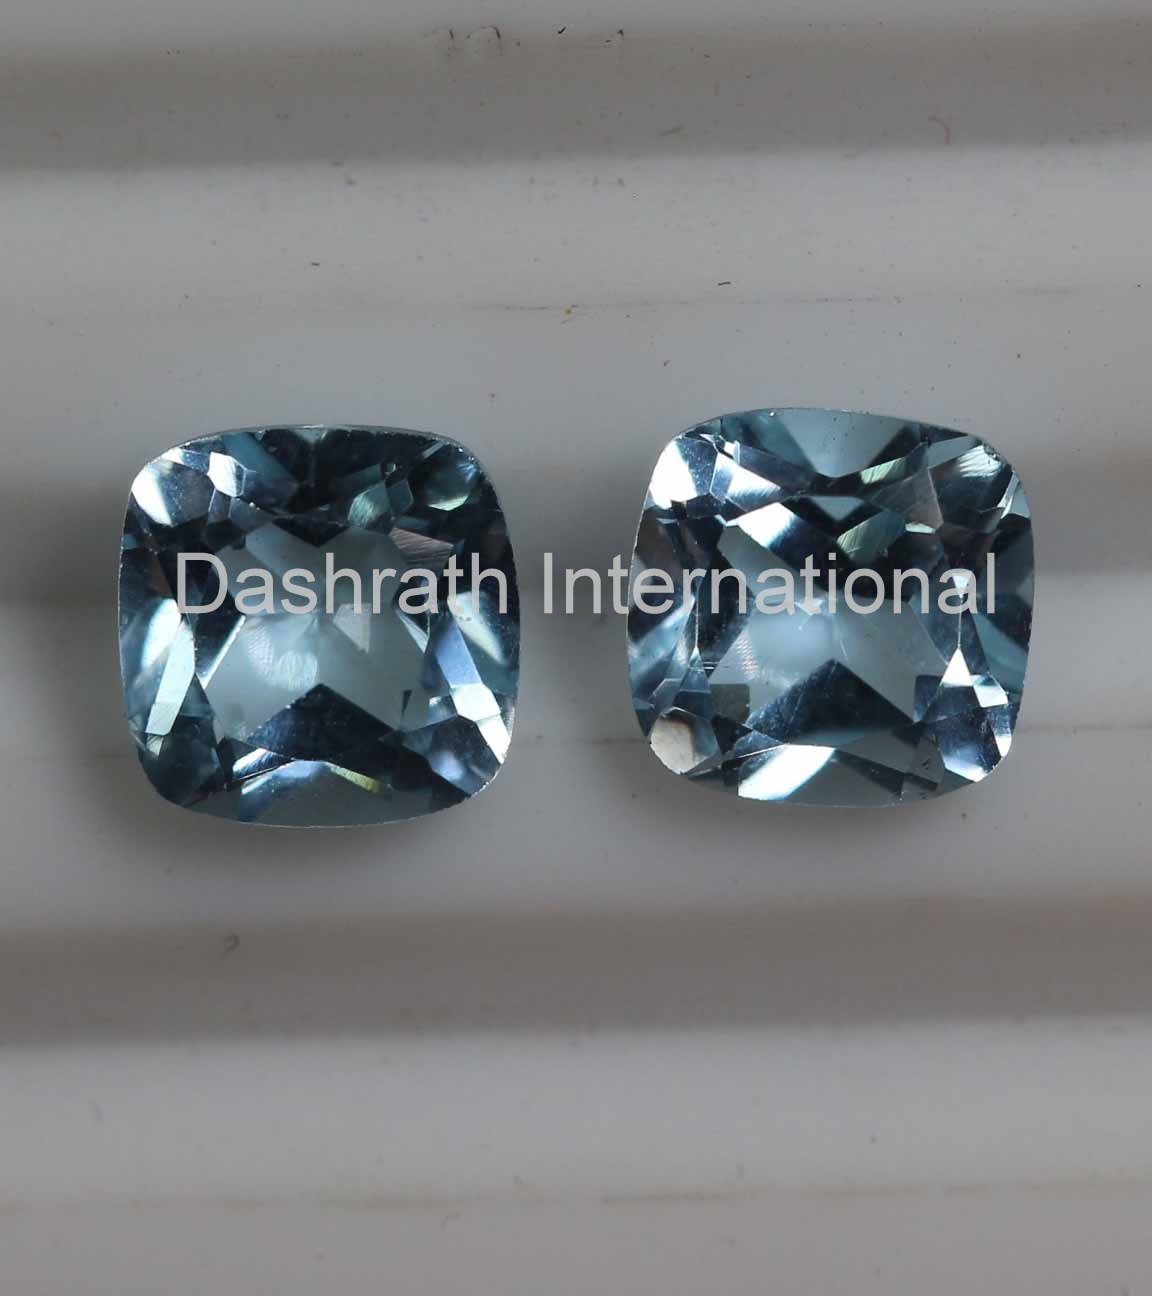 8mm Natural Sky Blue Topaz Faceted Cut Cushion 1 Piece Top Quality Loose Gemstone